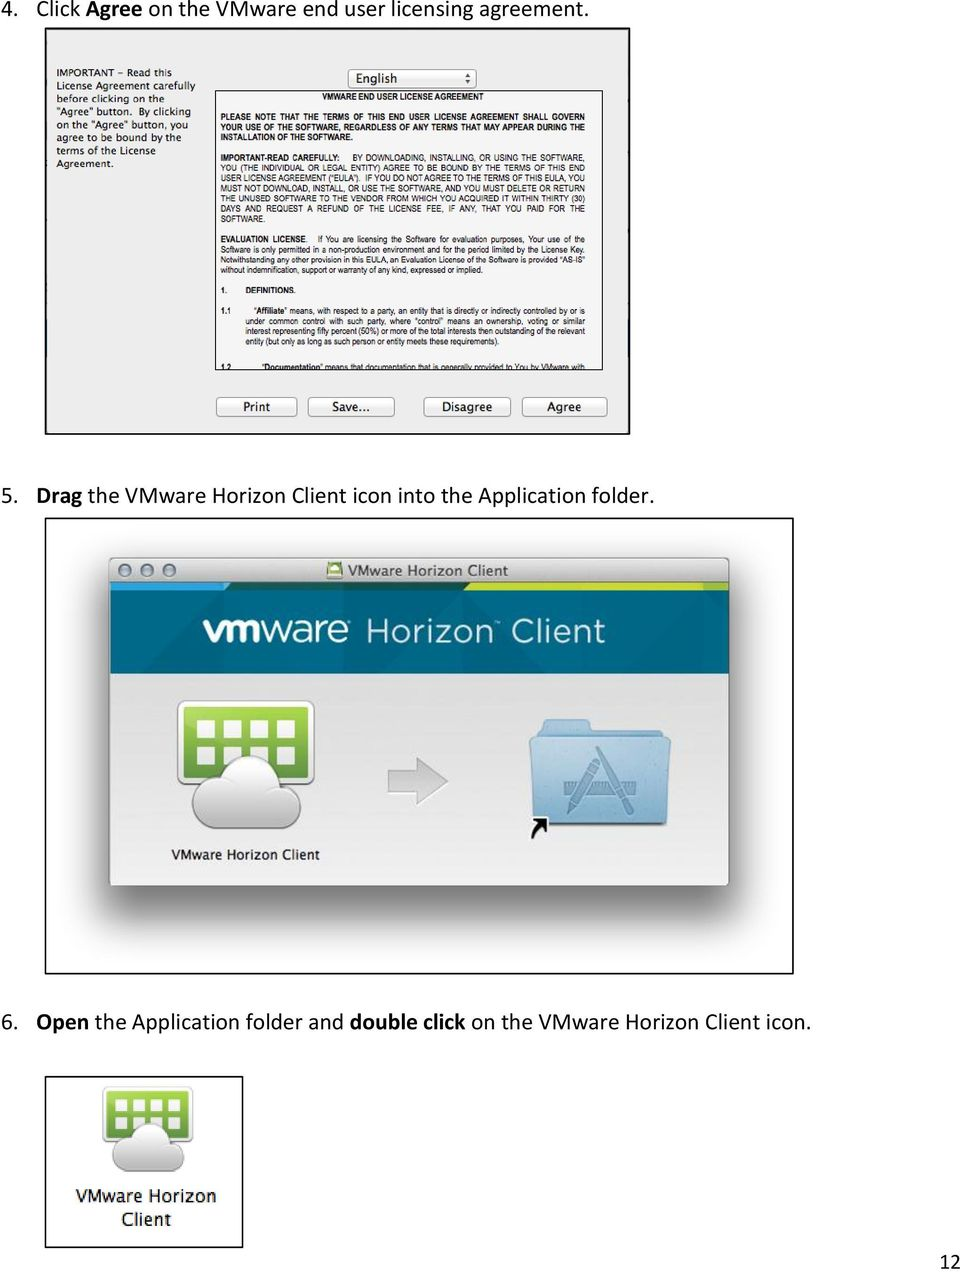 Drag the VMware Horizon Client icon into the